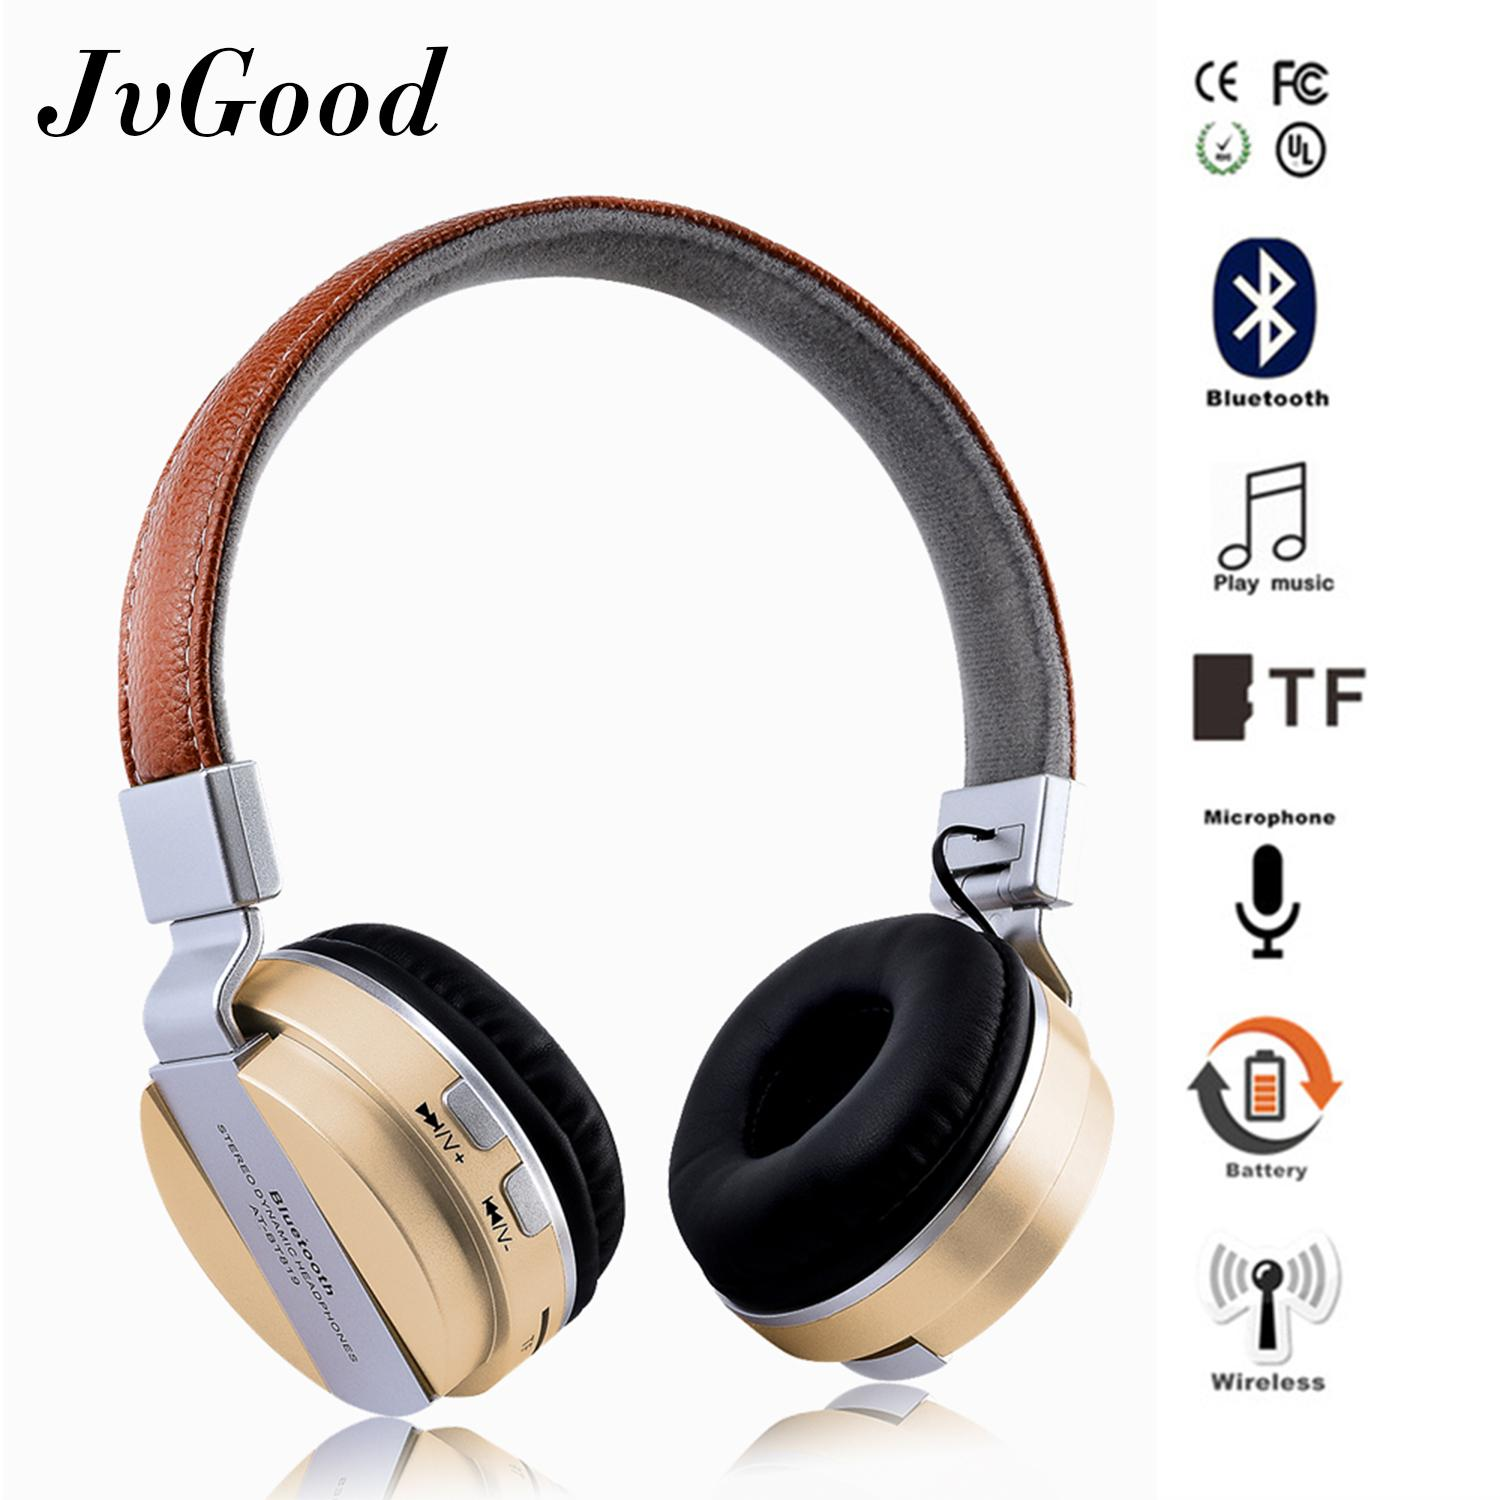 Jvgood Wireless Bluetooth Headphone Foldable Leather Sport Headset With Fm Radio Aux Tf Card-Mp3 Smart Phones Tablets By Jvgood.